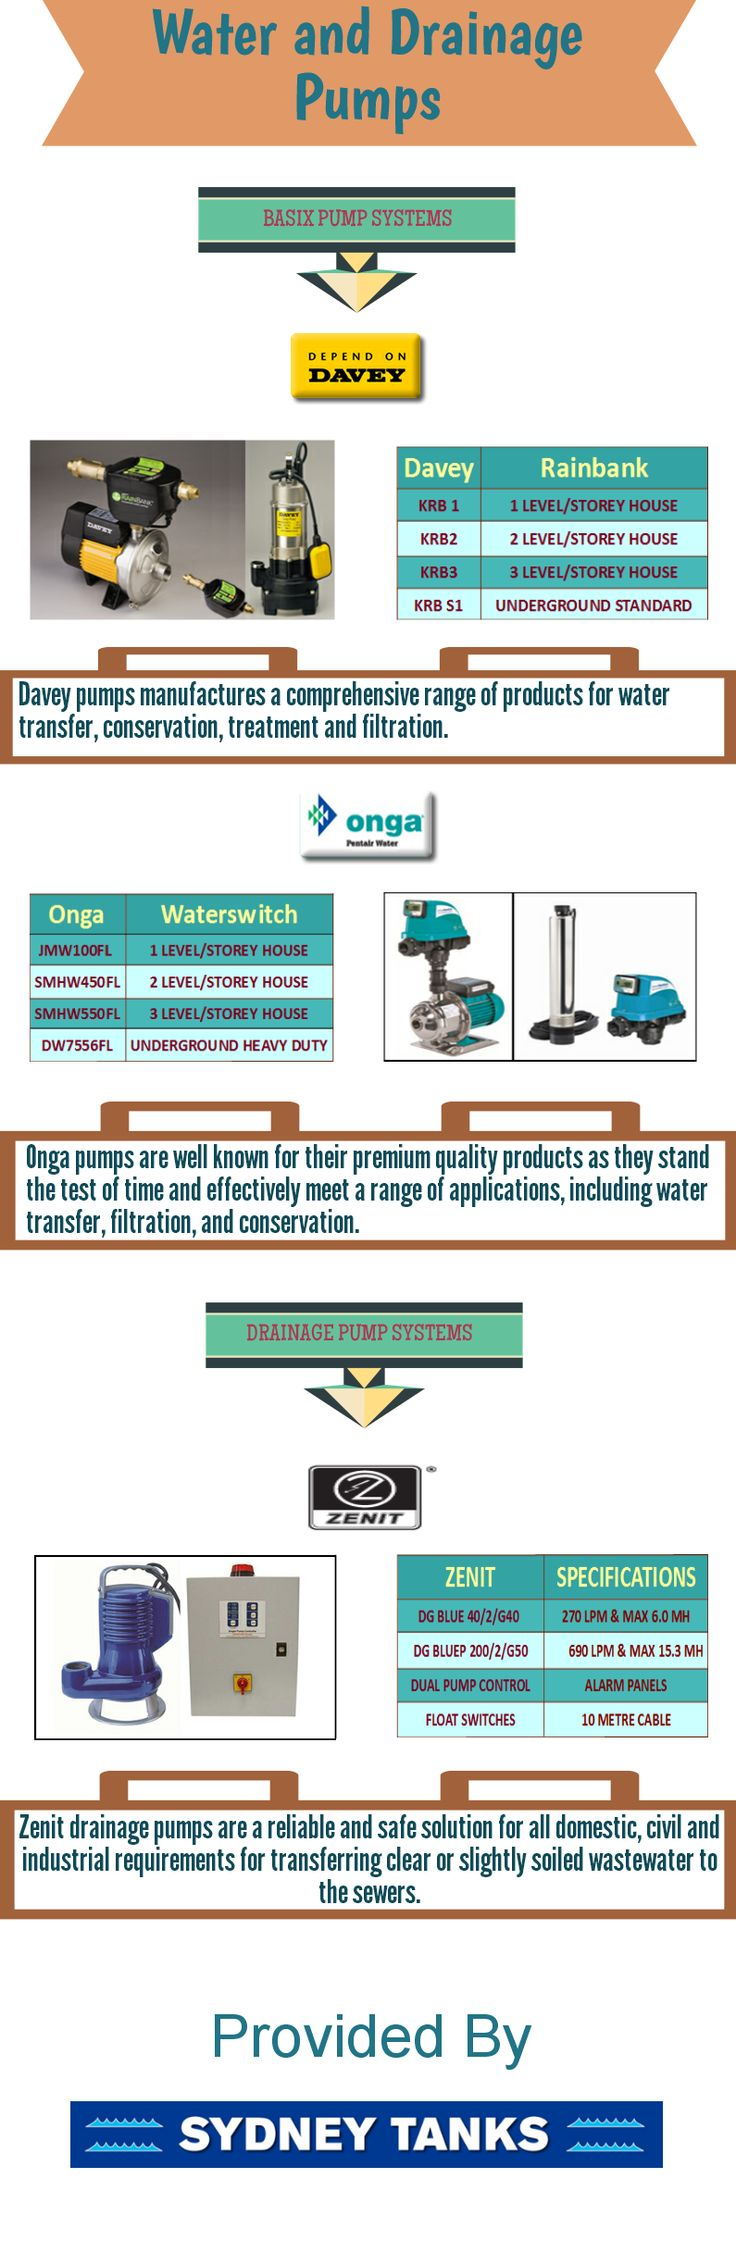 The water pumps are of two types ie basic pump systems and garden pump systems. Davey and Onga brands offer excellent basic pumps and garden pumps. Zenit brand offers excellent drainage pump systems of two different types. A brief introduction of these systems has been given in this info-graphic.